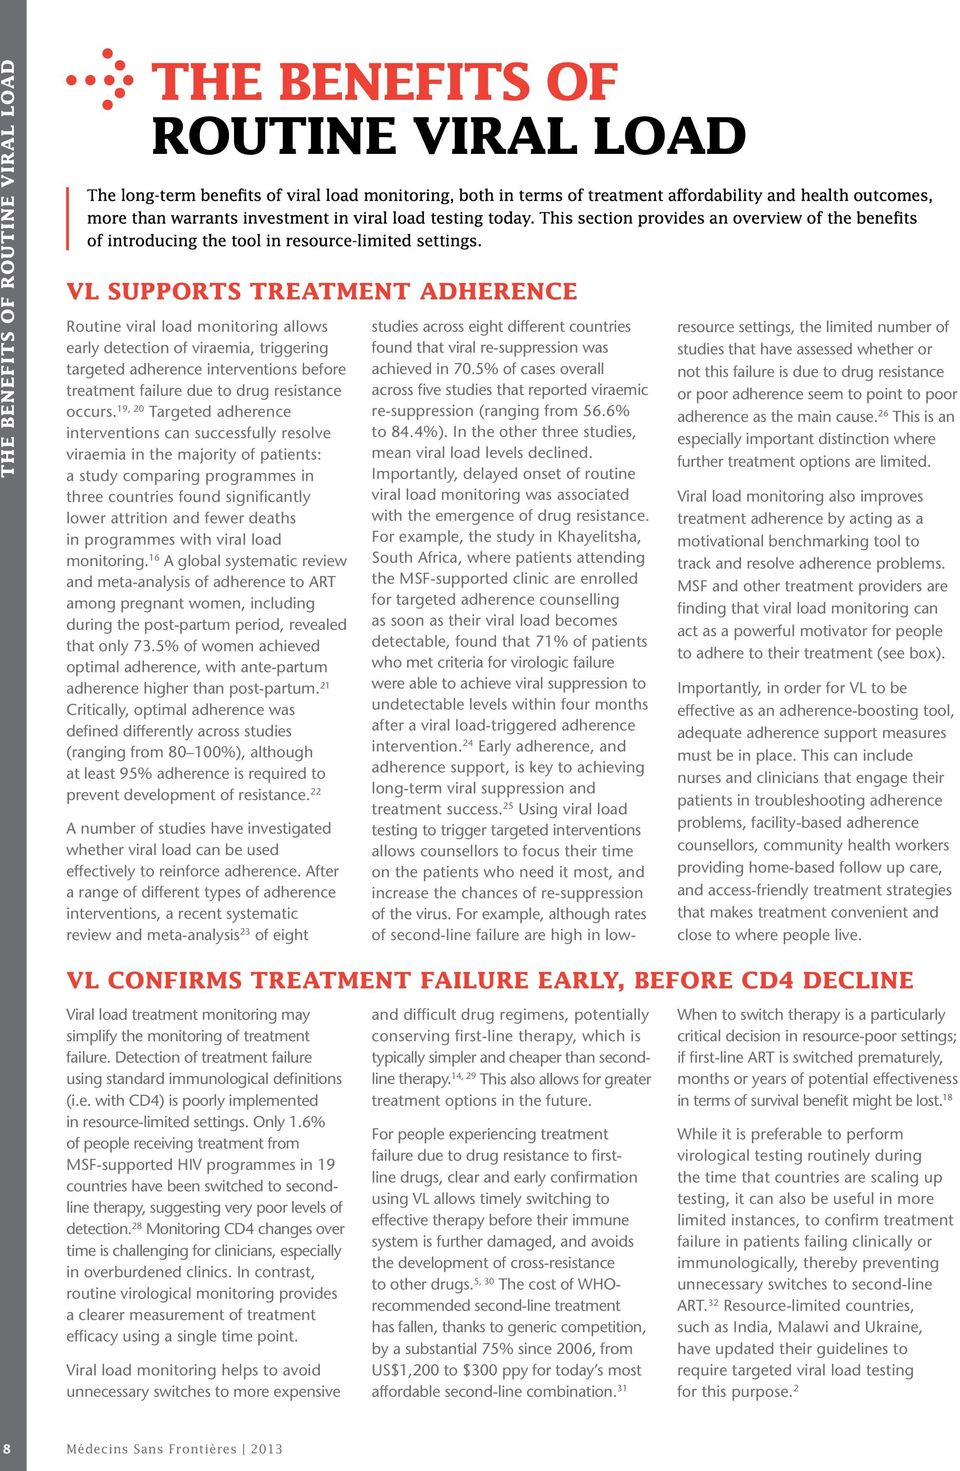 VL supports treatment adherence Routine viral load monitoring allows early detection of viraemia, triggering targeted adherence interventions before treatment failure due to drug resistance occurs.